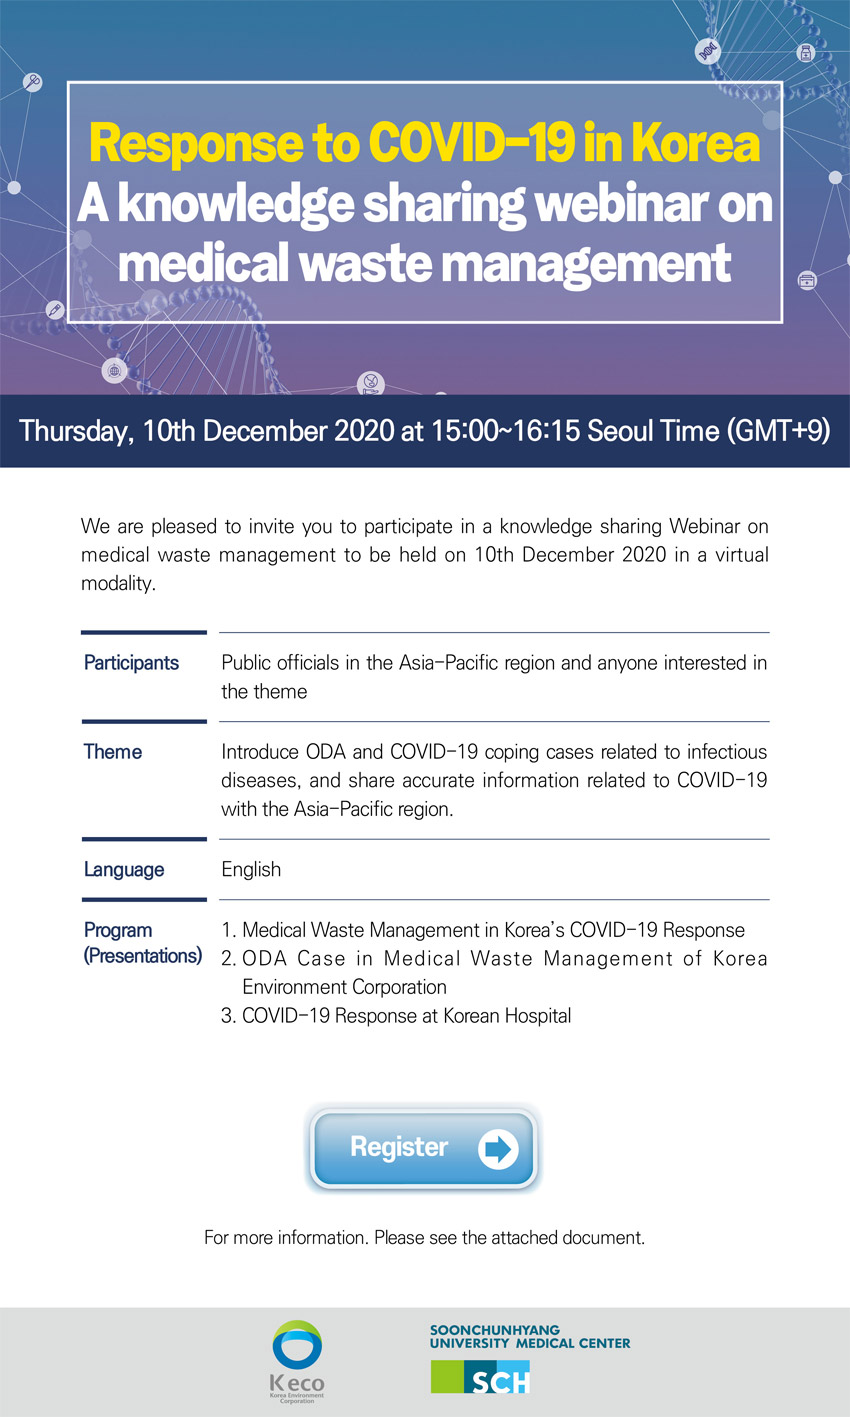 Response to COVID-19 in Korea A knowledge sharing webinar on medical waste management 10th December 2020 at 15:00-16:15 Korea time(GMT+9) We are pleased to invite you to participate in a knowledge sharing webinar on medical waste management to be held on 10th December 20220 in a virtual modality. Participants : Public officials in the Asia-Pacific region and anyone interested in the theme Theme : Introduce ODA and COVID-19 coping cases related to infectious diseases, and share accurate information related to COVID-19 with the Asia-Pacific region Language : English Program(Presentation) : 1. Medical Waste Management in Korea's COVID-19 Respose 2. ODA Case in Medical Waste Management of Korea Environment Corporation Mr. Hong Se-Rok, Project Manager, Korea Environment Corporation  3. COVID-19 Response at Korean Hospital David Kwak M.D., Clinical Instructor, International Clinic, Soon Chun Hyang Univ. Hospital Click register button to participate in this seminar